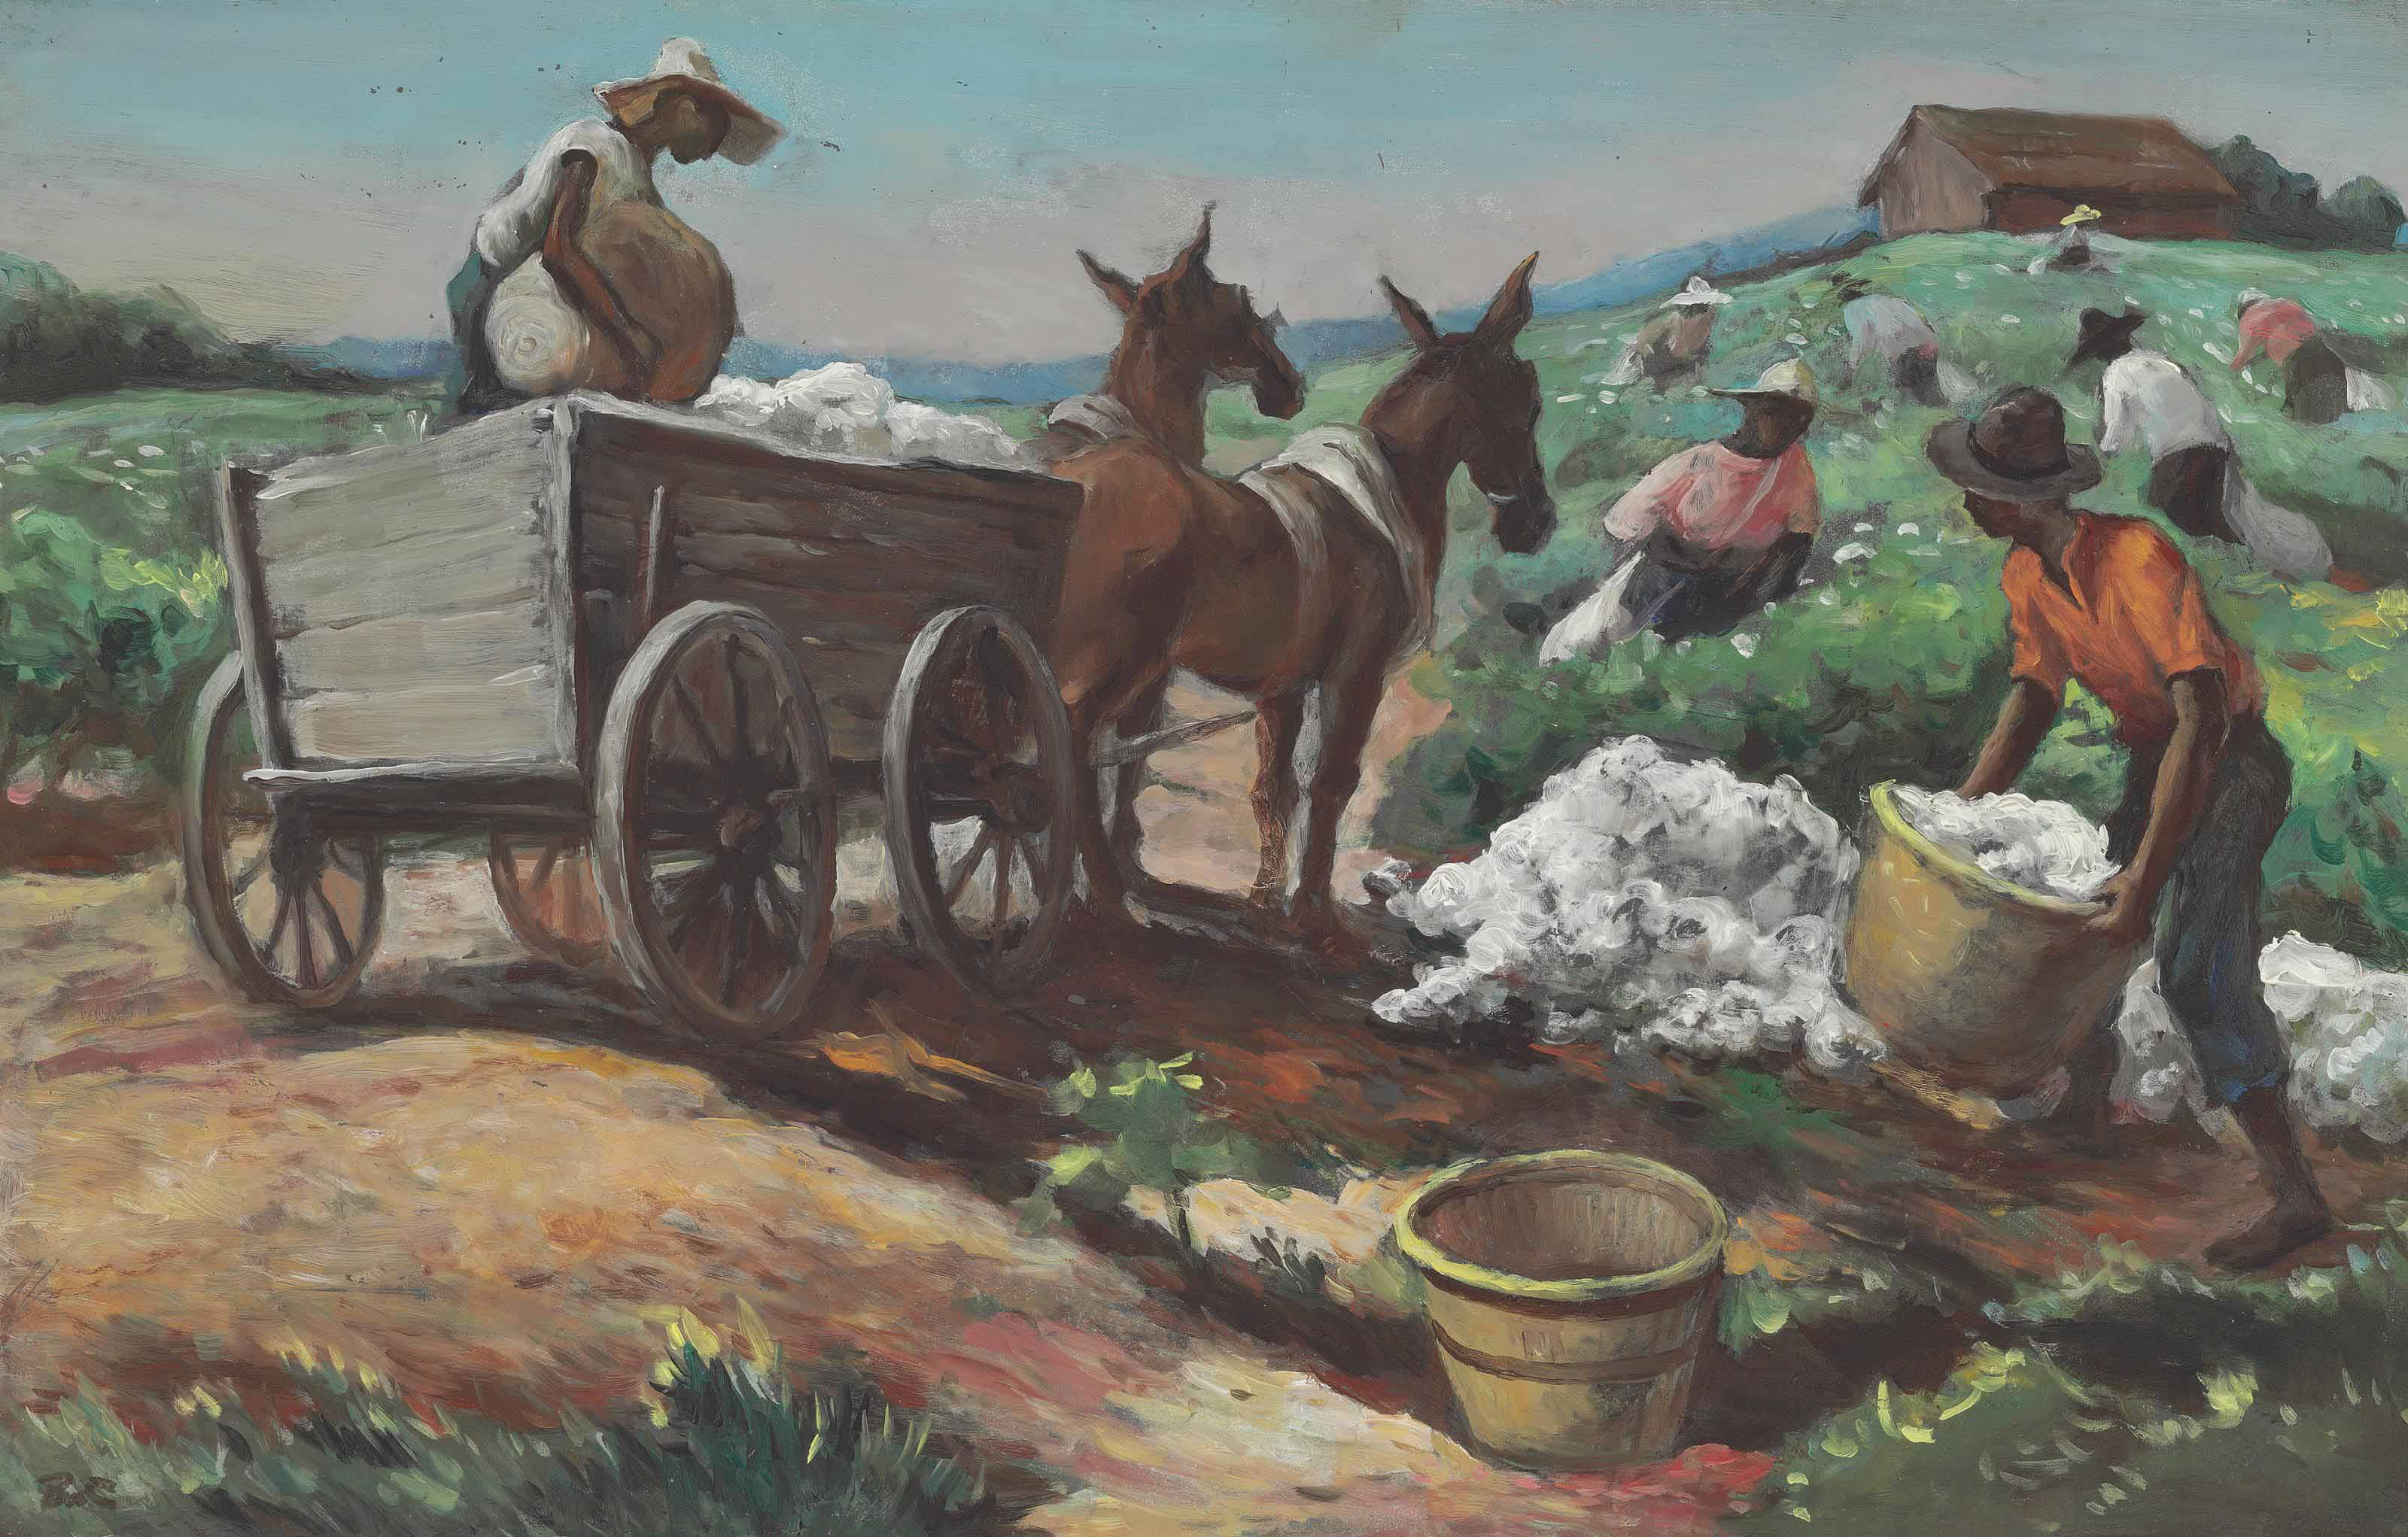 Cotton Picking and Loading